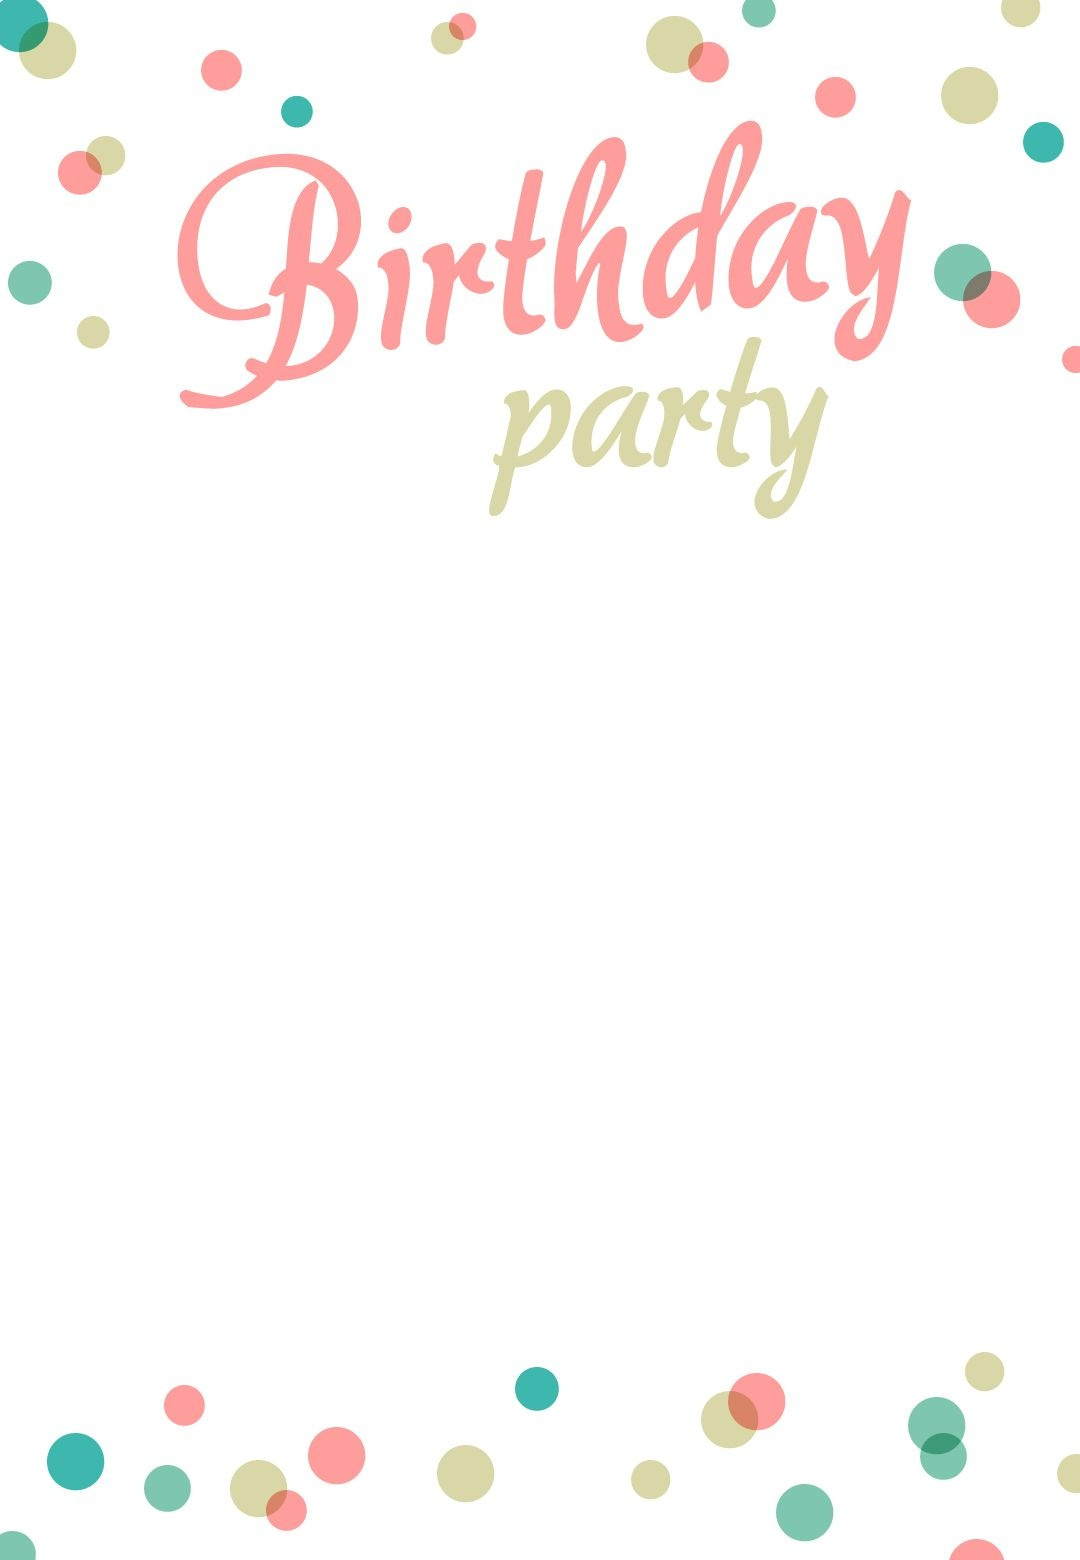 Birthday Party Dots - Free Printable Birthday Invitation Template - Free Printable Birthday Invitation Templates